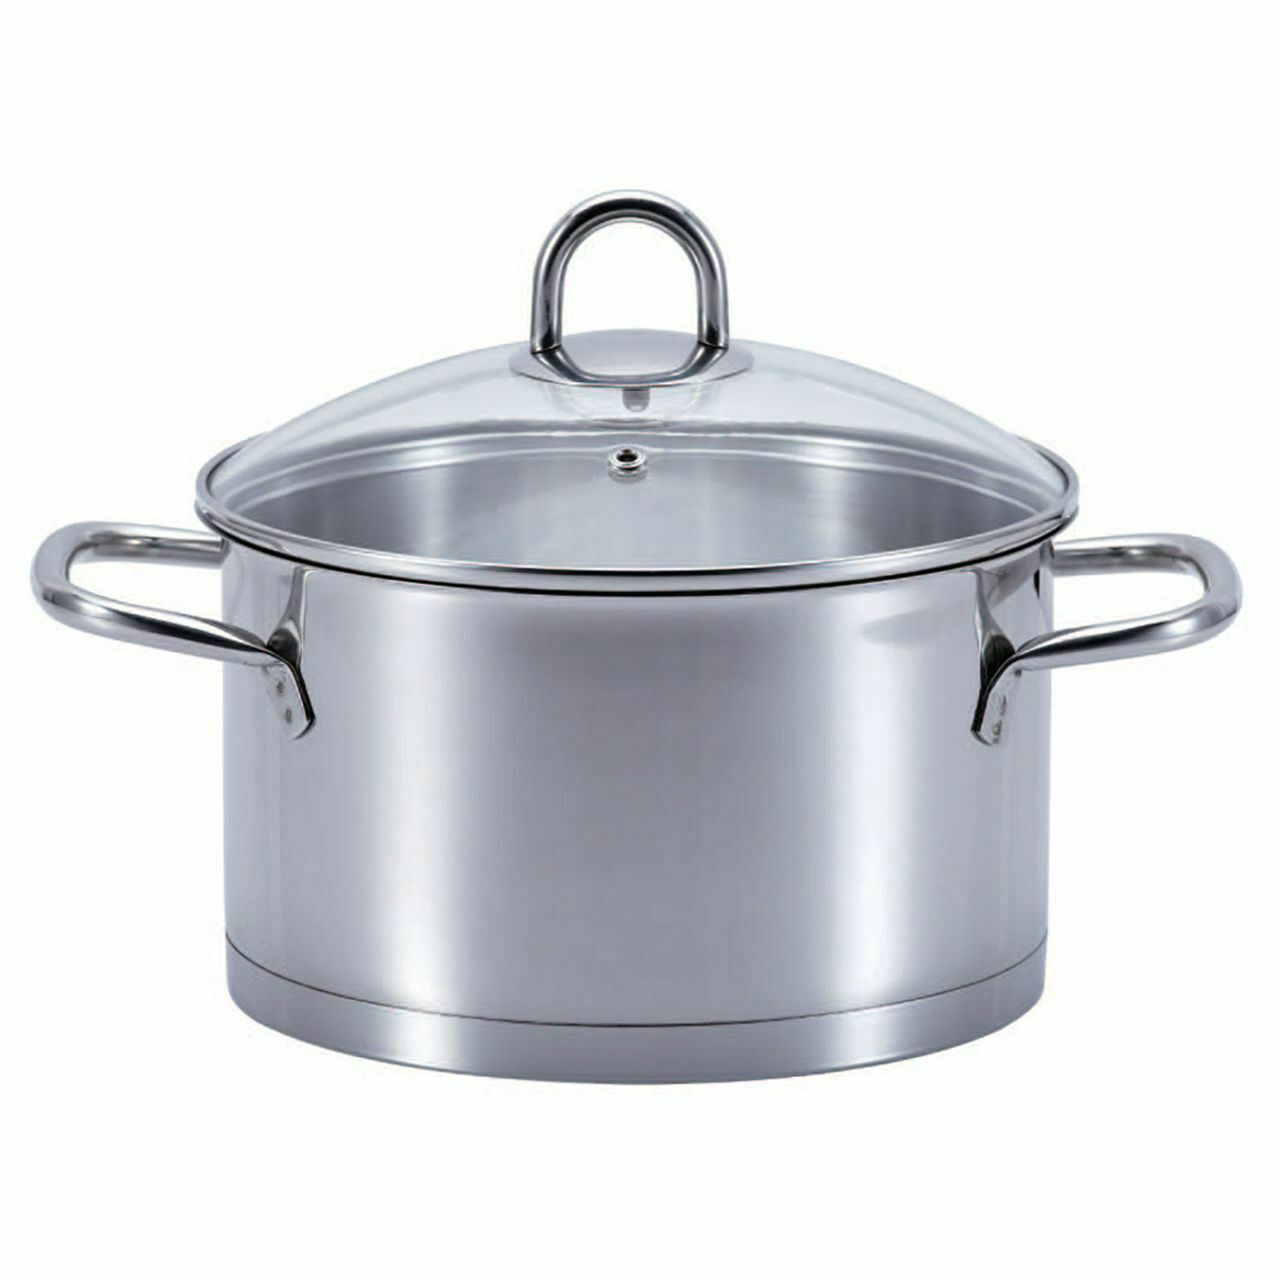 Ssw Kitchen Q pro Star Cooking Pot with Lid, Stainless Steel, Ø 24 cm, 6,1 L